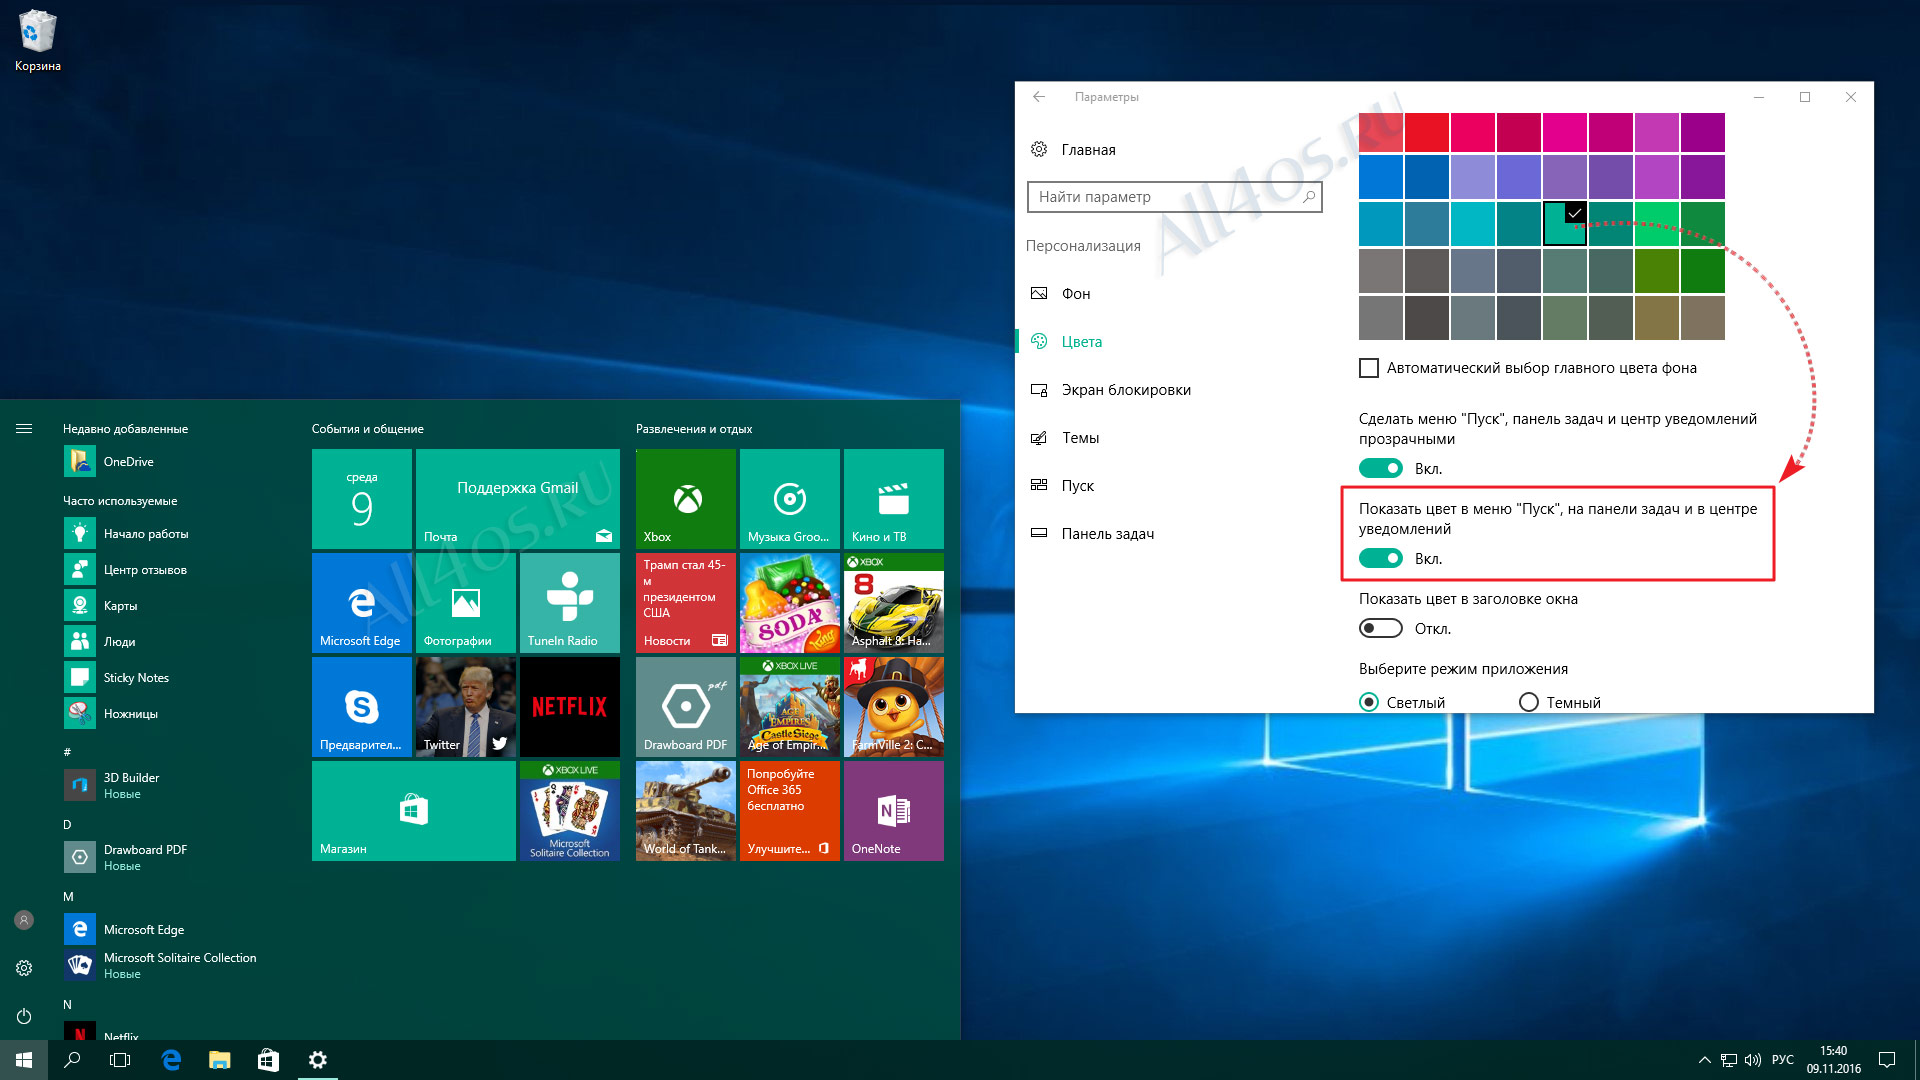 Как поменять цвет в панели задач windows 8